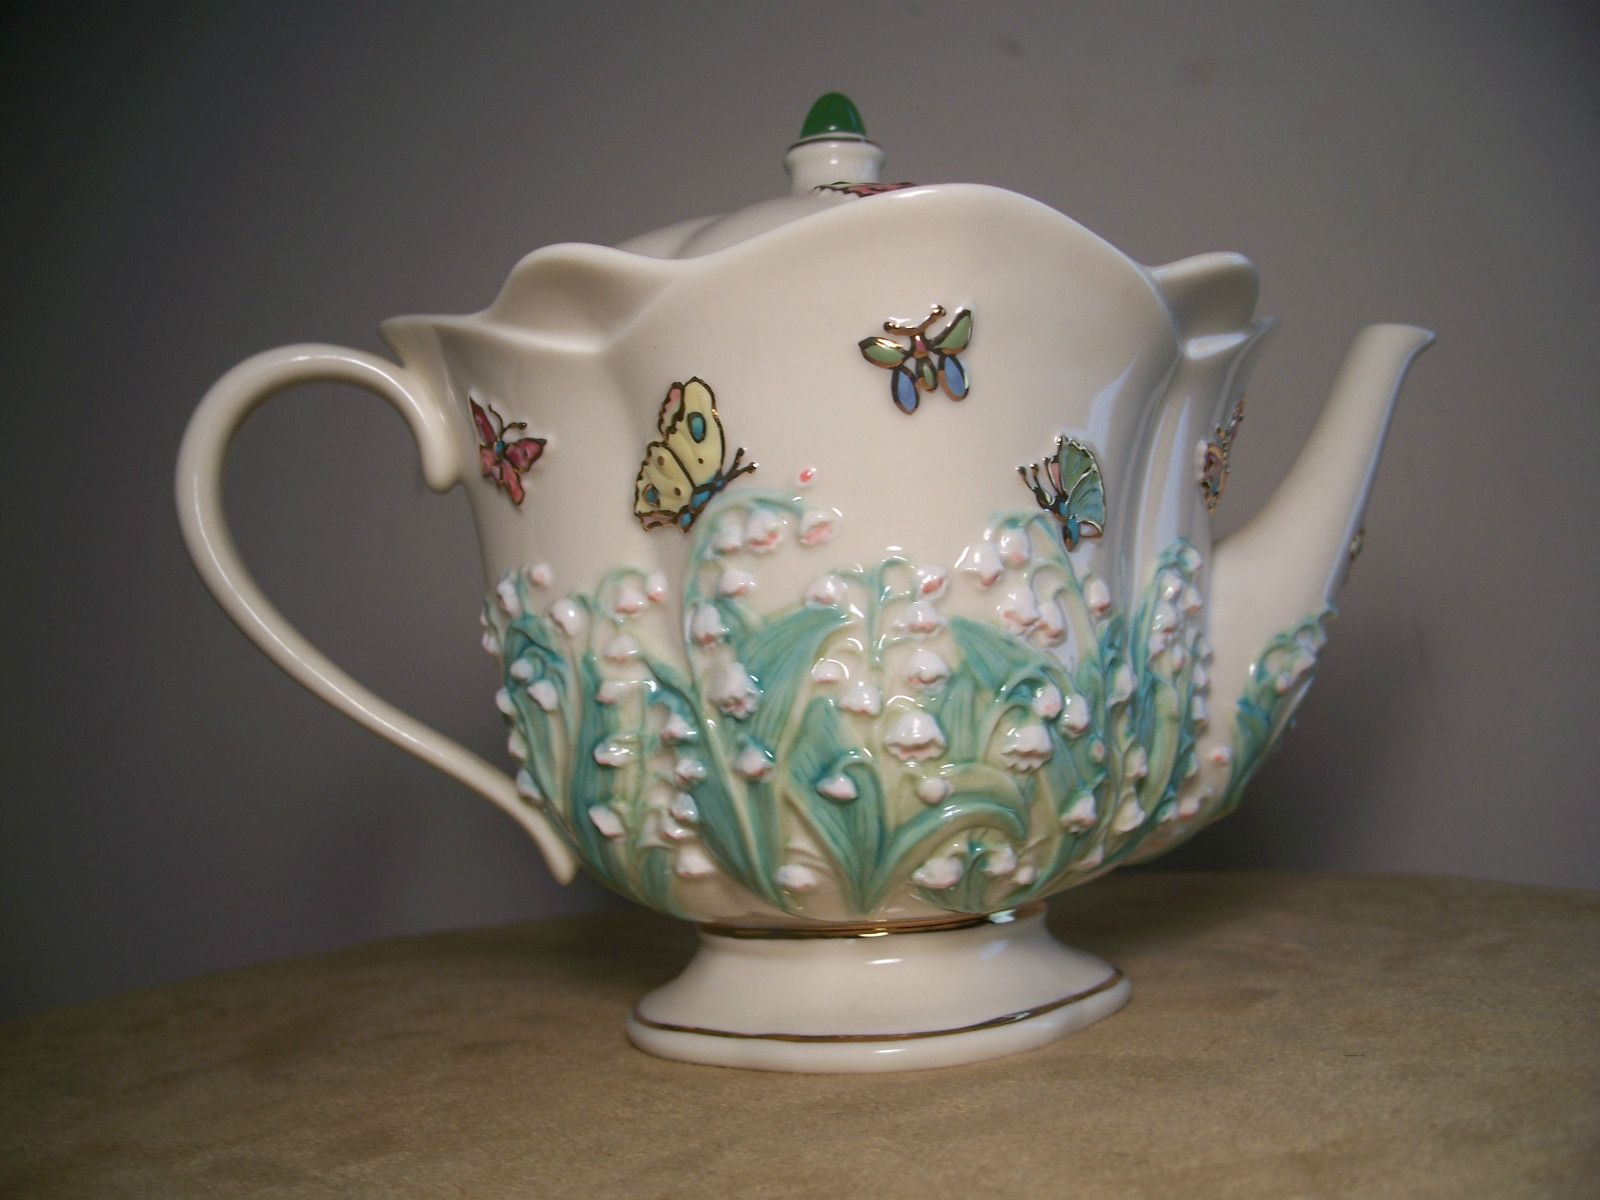 Lenox Parvaneh Halloway Lily of The Valley Teapot w Embossed Lilies Butterflies   eBay